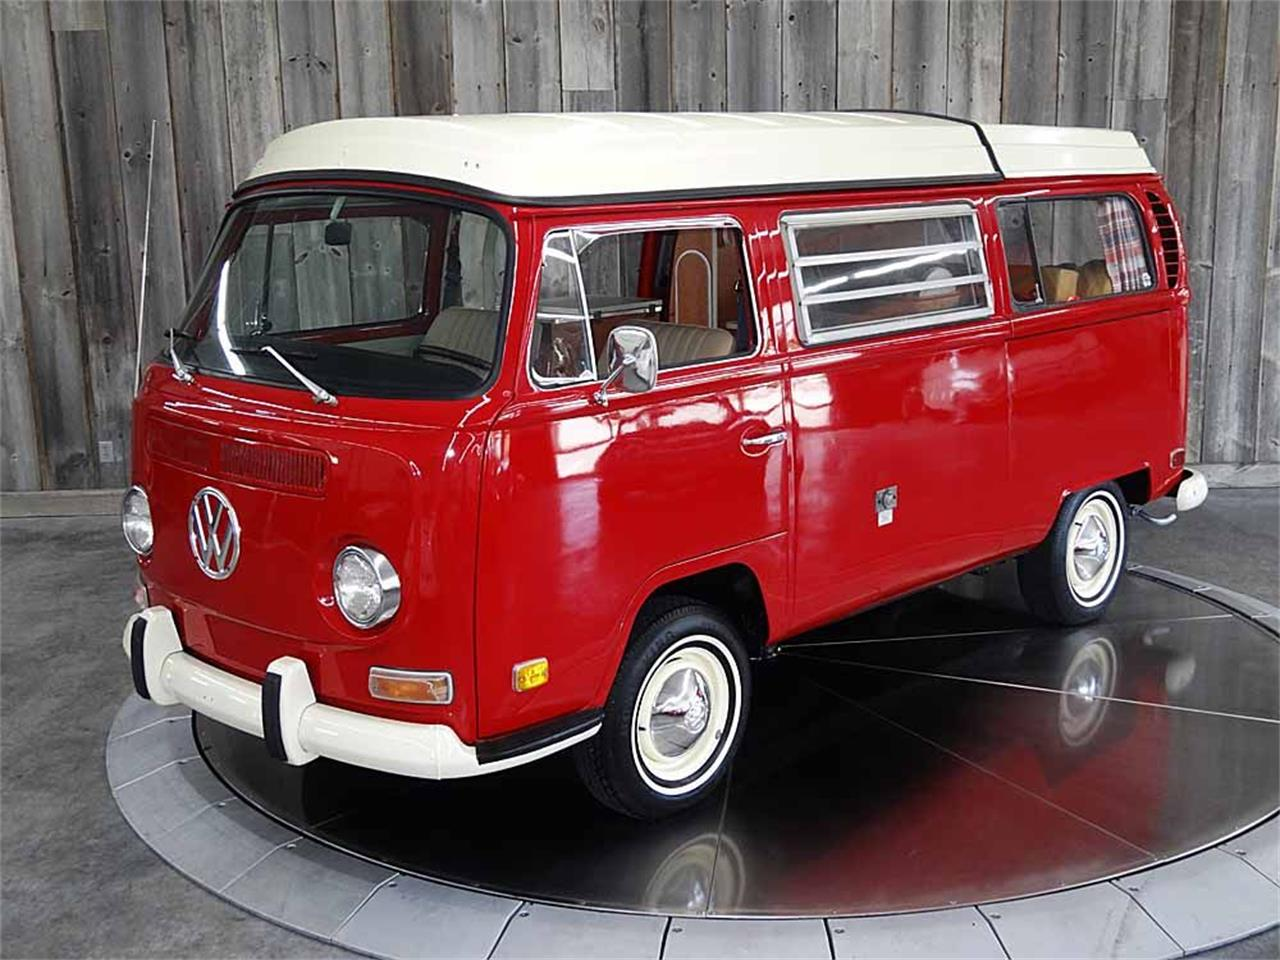 1970 Volkswagen Westfalia Camper Van Camper For Sale